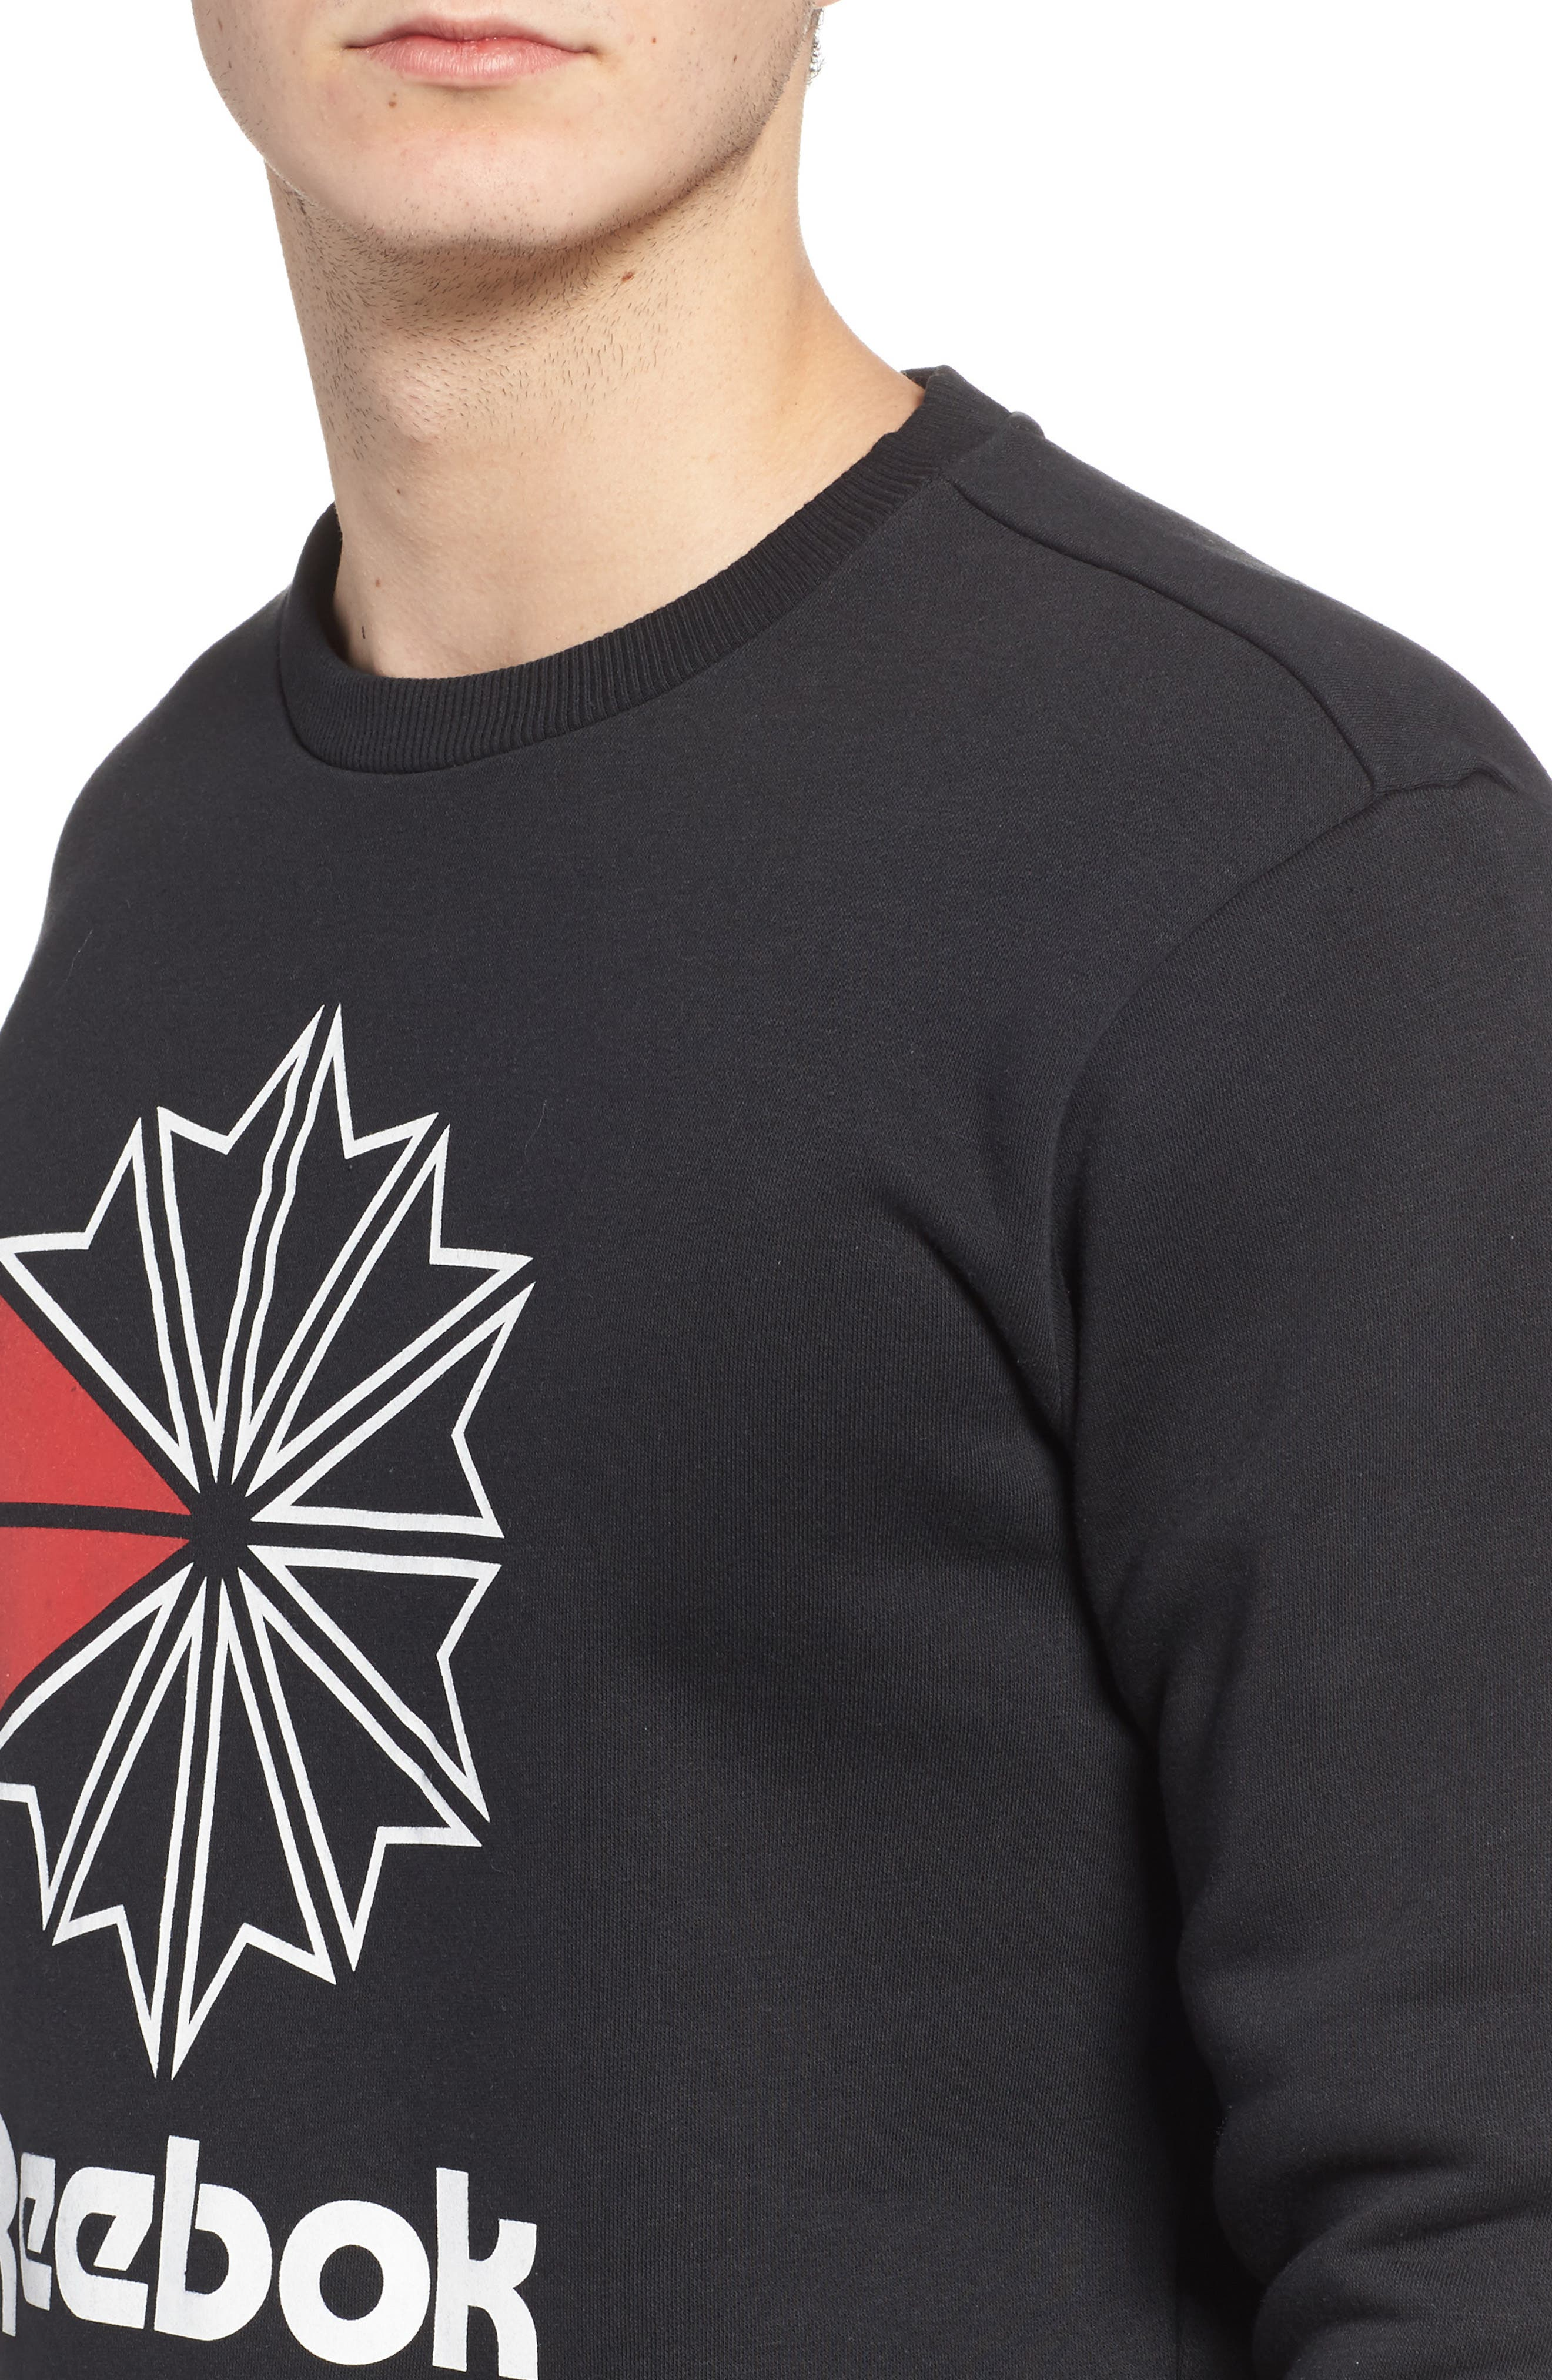 Starcrest Sweatshirt,                             Alternate thumbnail 4, color,                             005